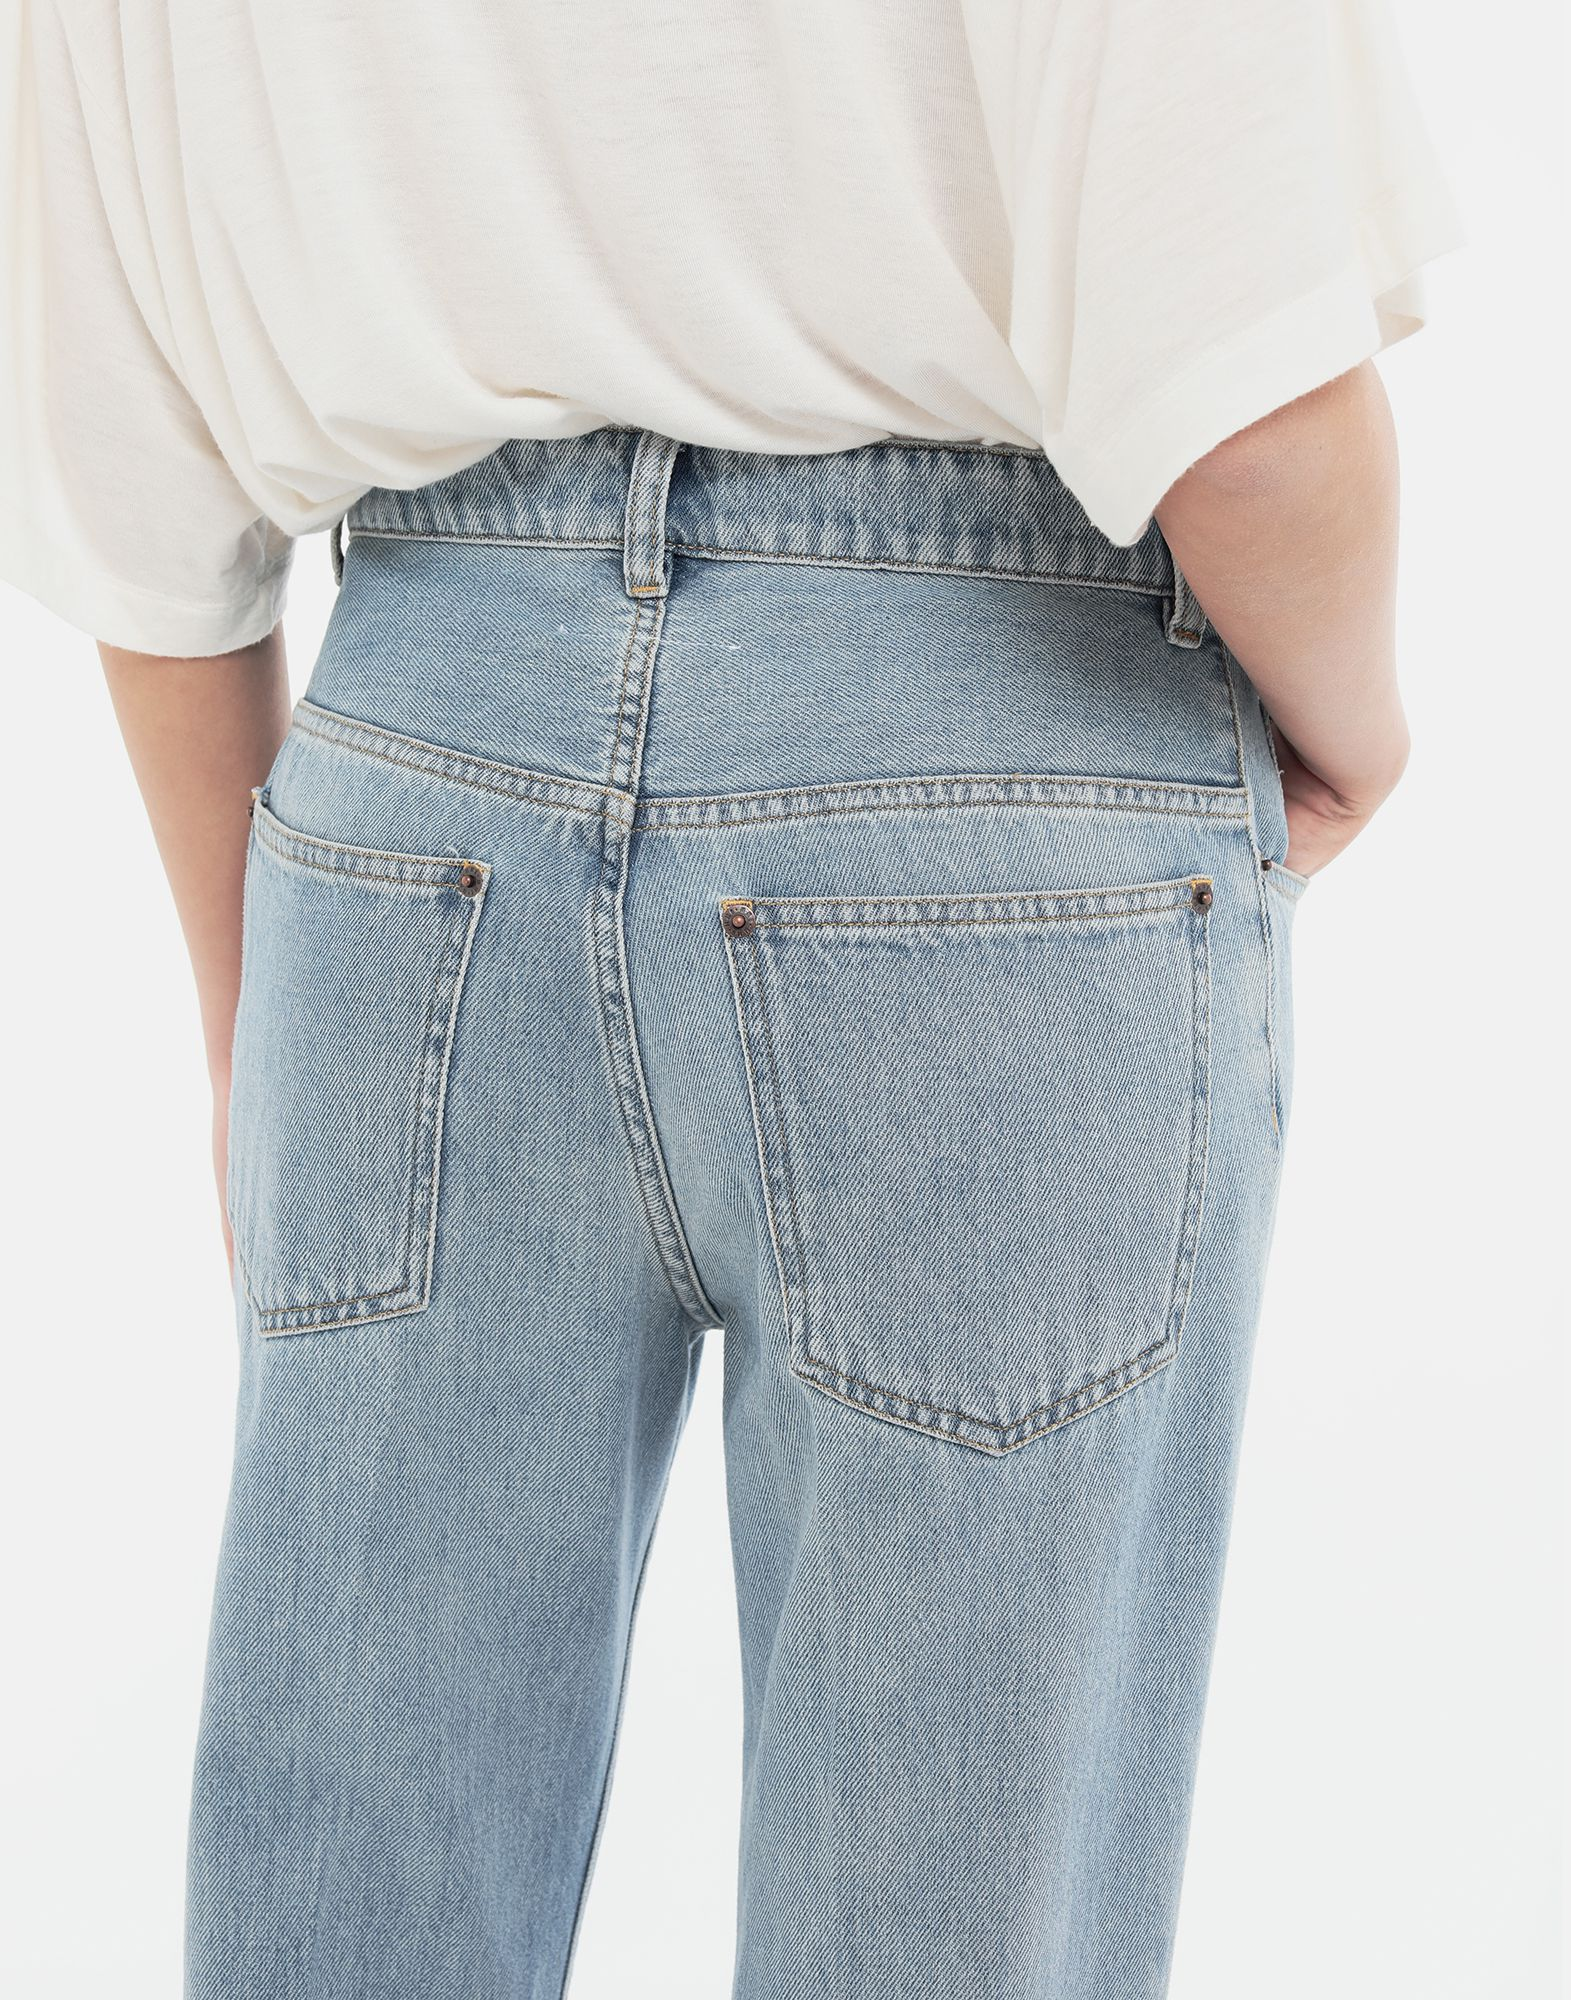 MM6 MAISON MARGIELA Relaxed-fit jeans Jeans Woman b